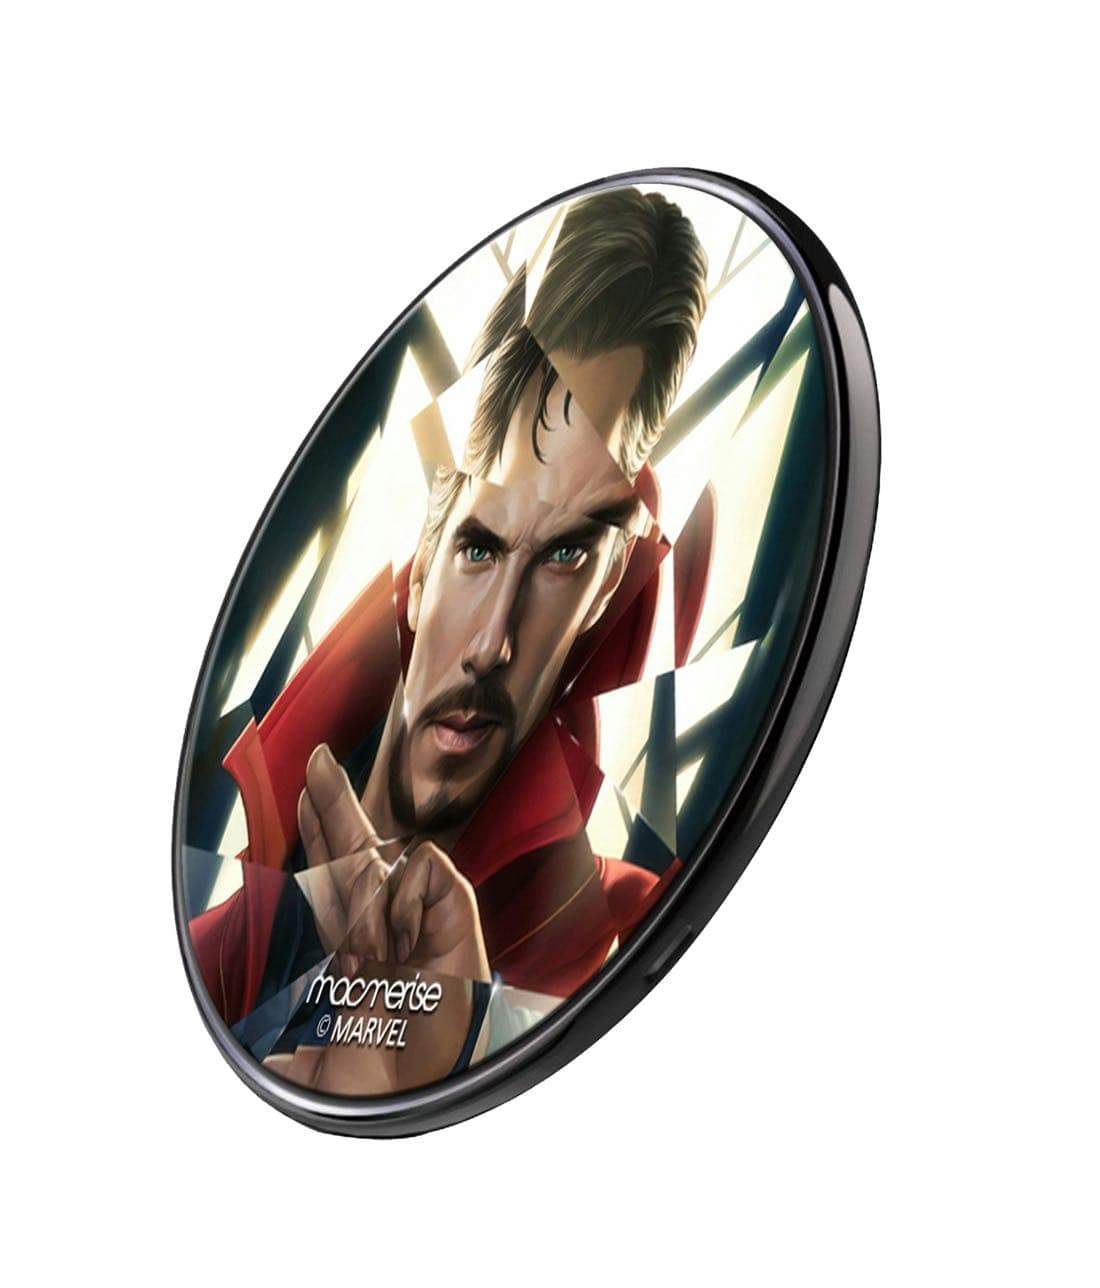 Doctor Strange Geometric Wireless Charger by Macmerise -Macmerise - India - www.superherotoystore.com